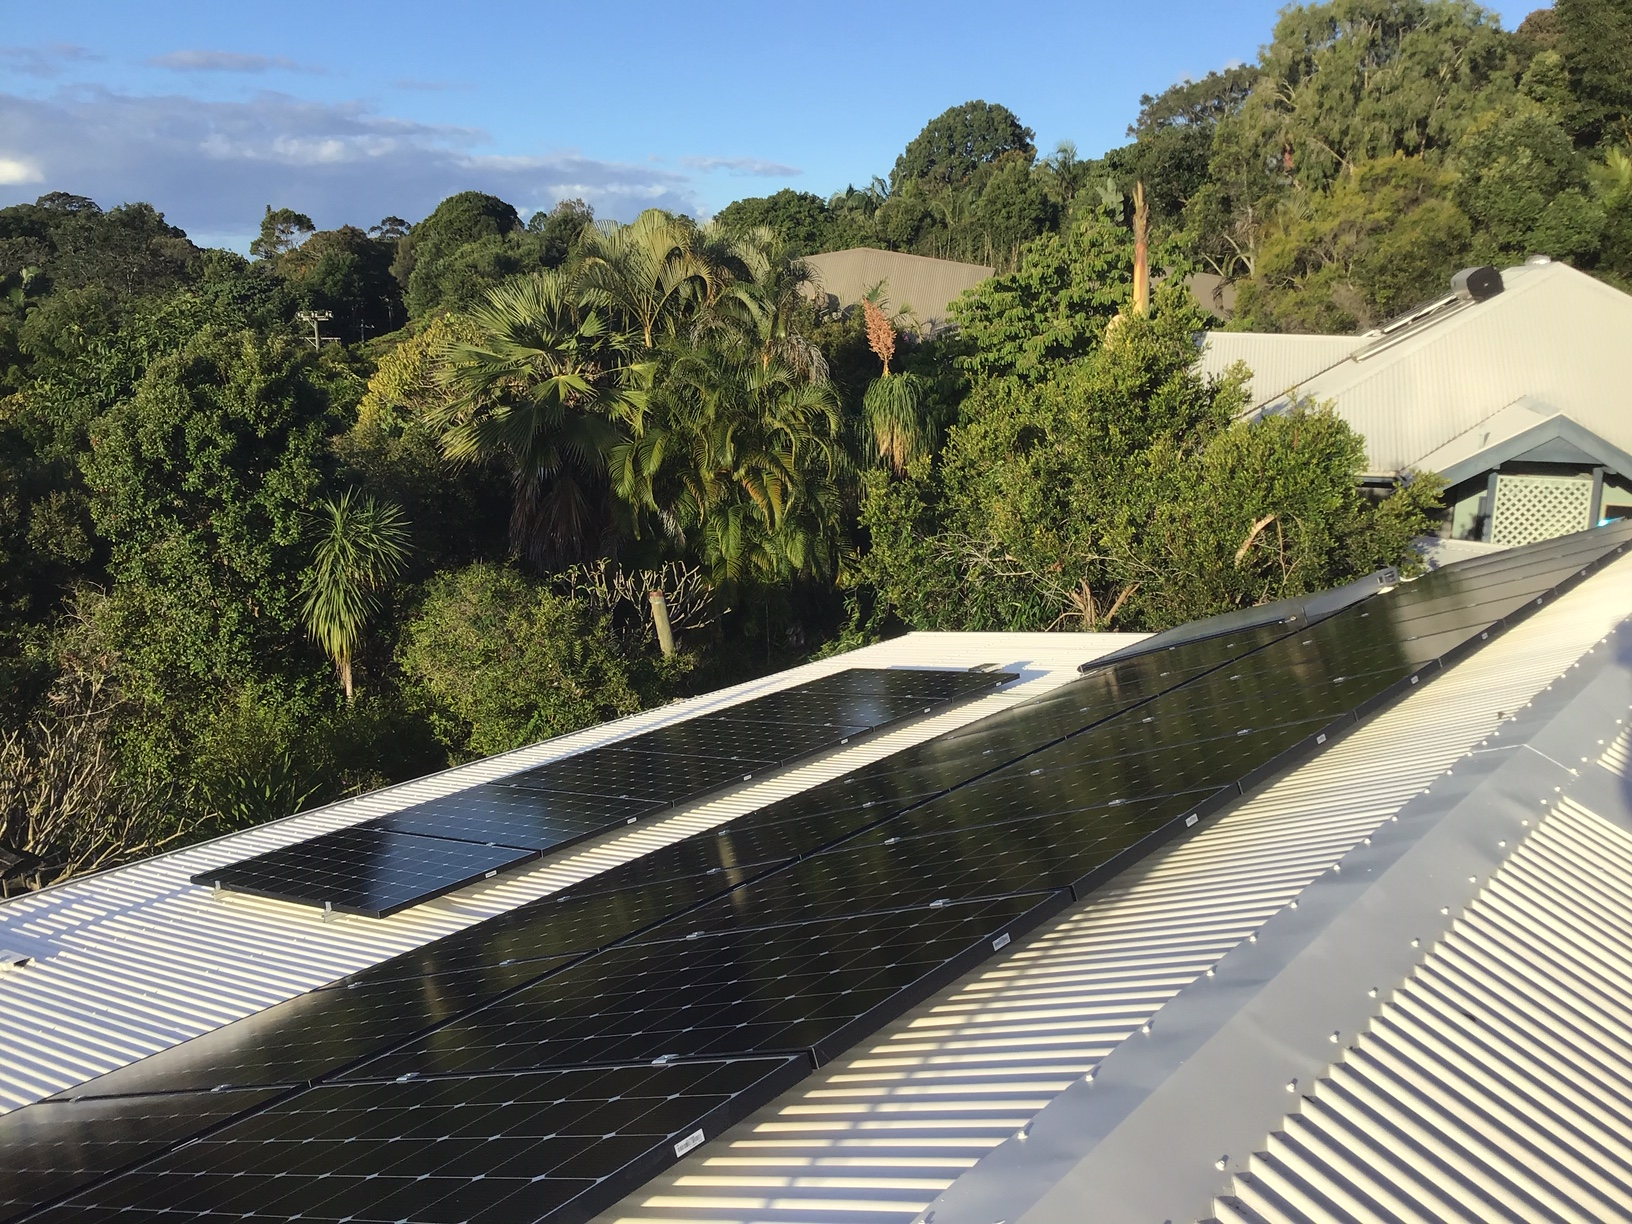 Residential Installation in Mullumbimby using LG340 modules